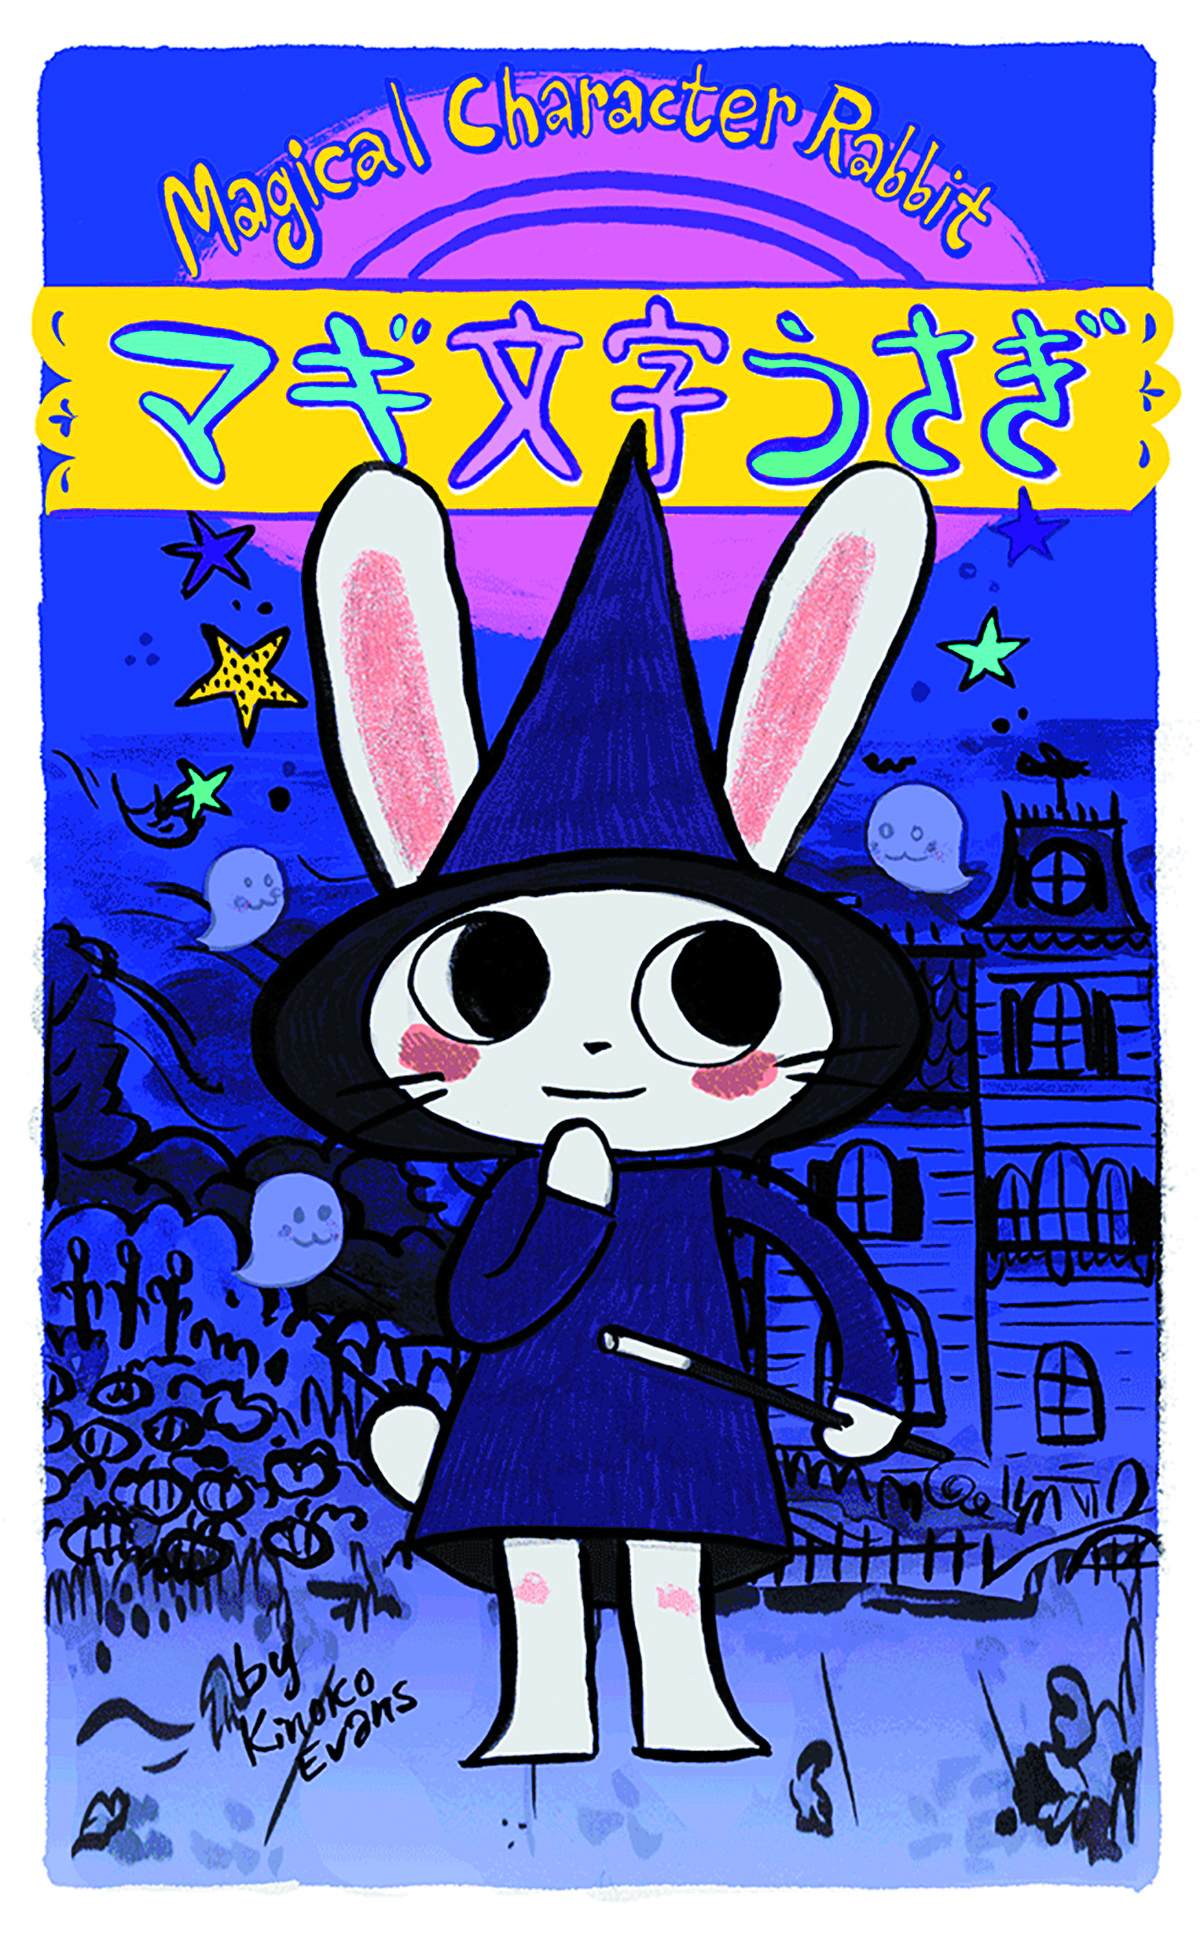 MAGICAL CHARACTER RABBIT ONE SHOT